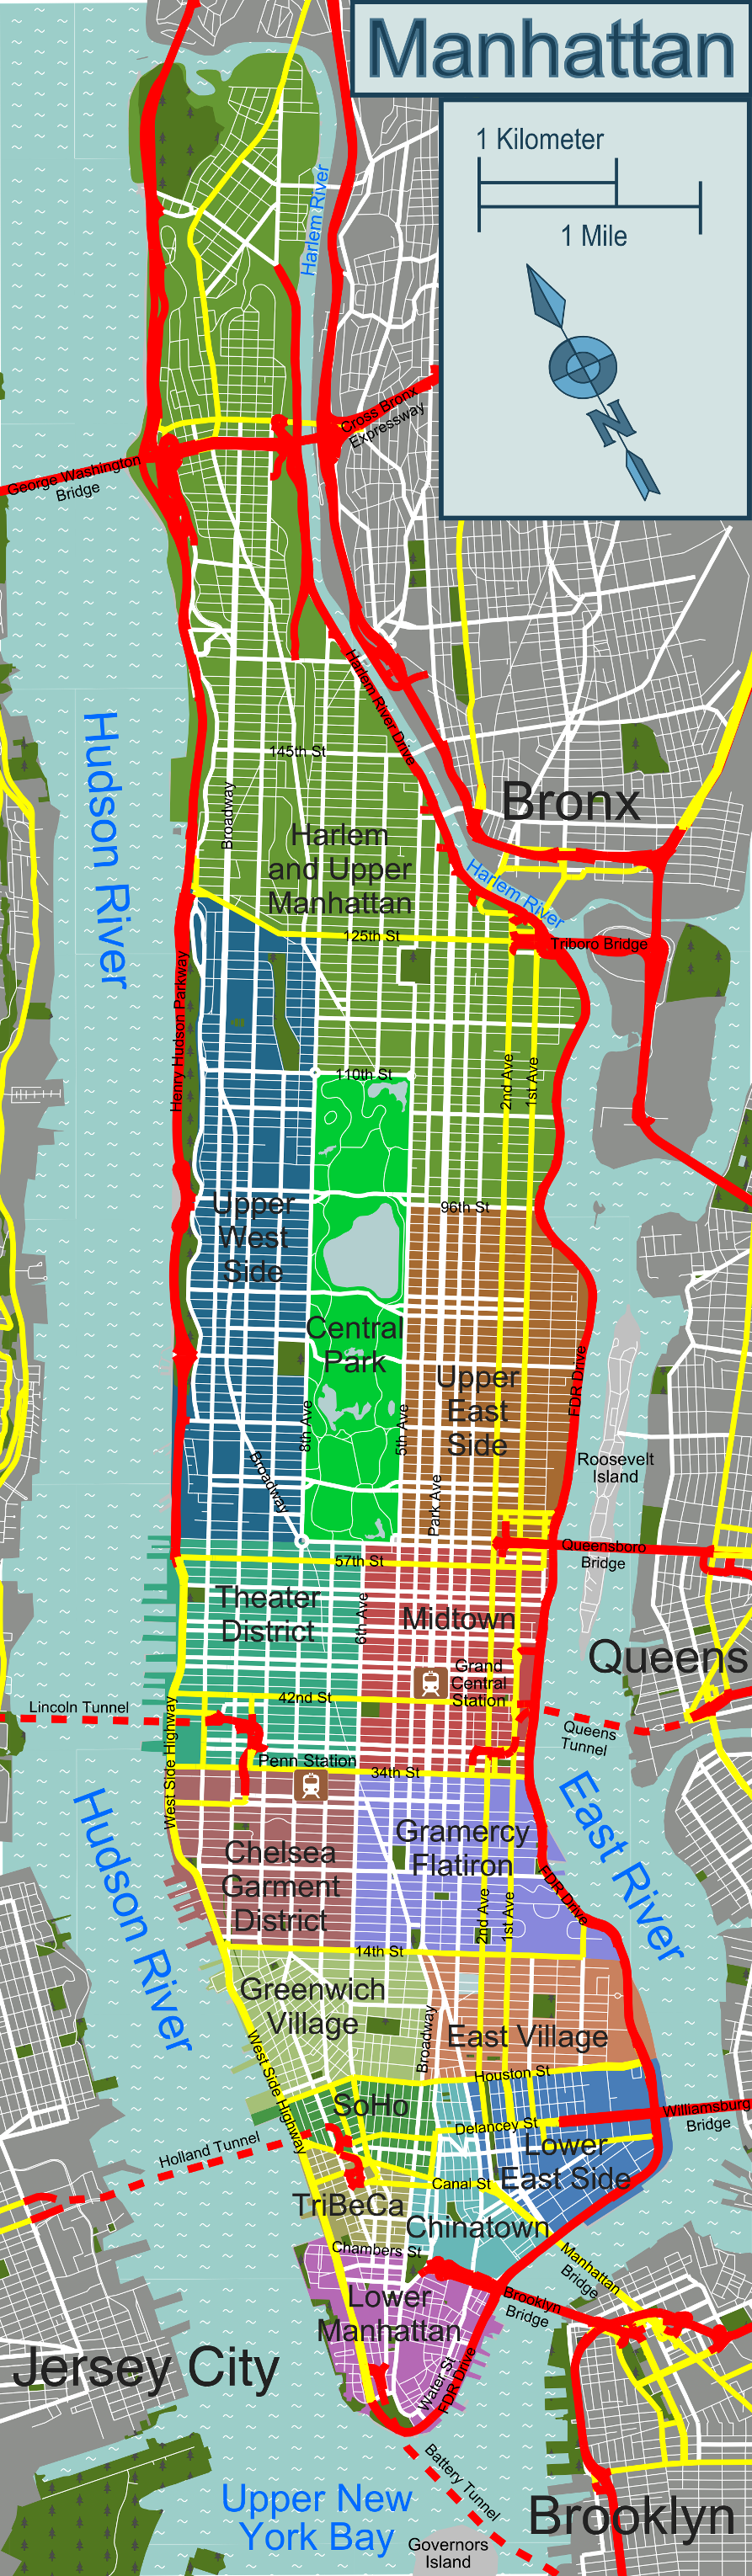 Manhattan_districts_51811